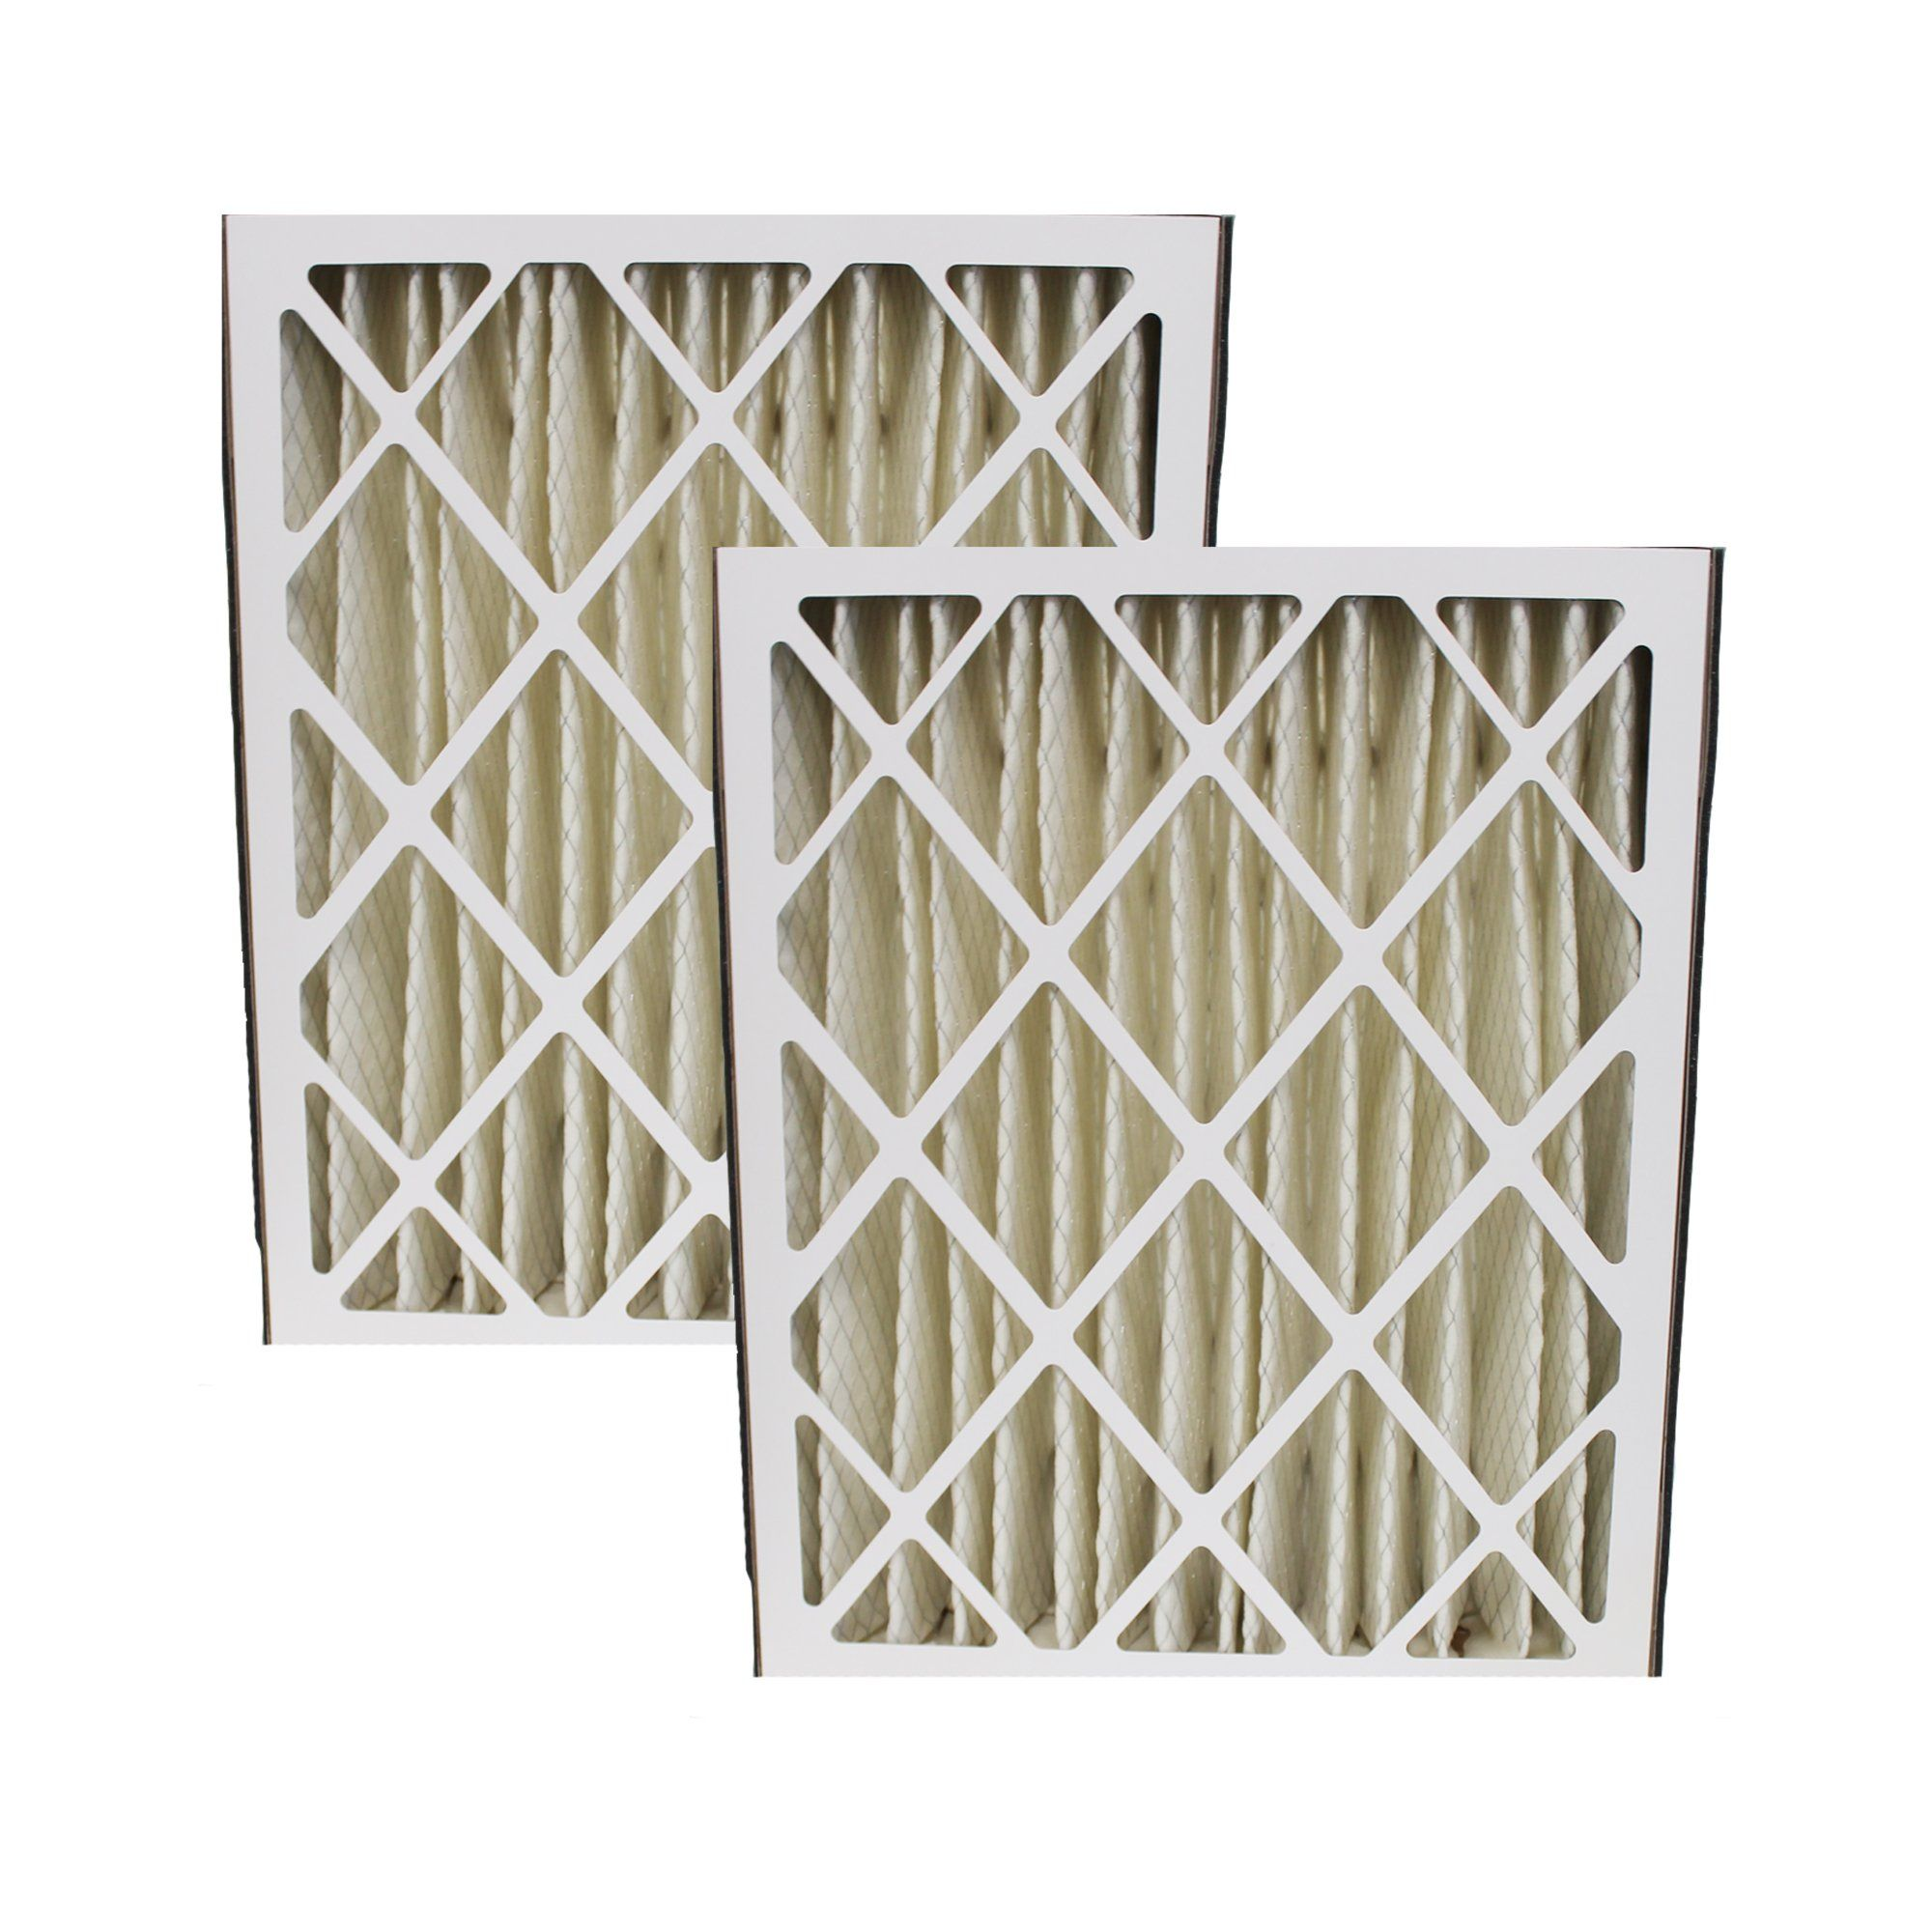 Replacement 20x25x5 MERV8 Furnace HVAC Filter, Fits